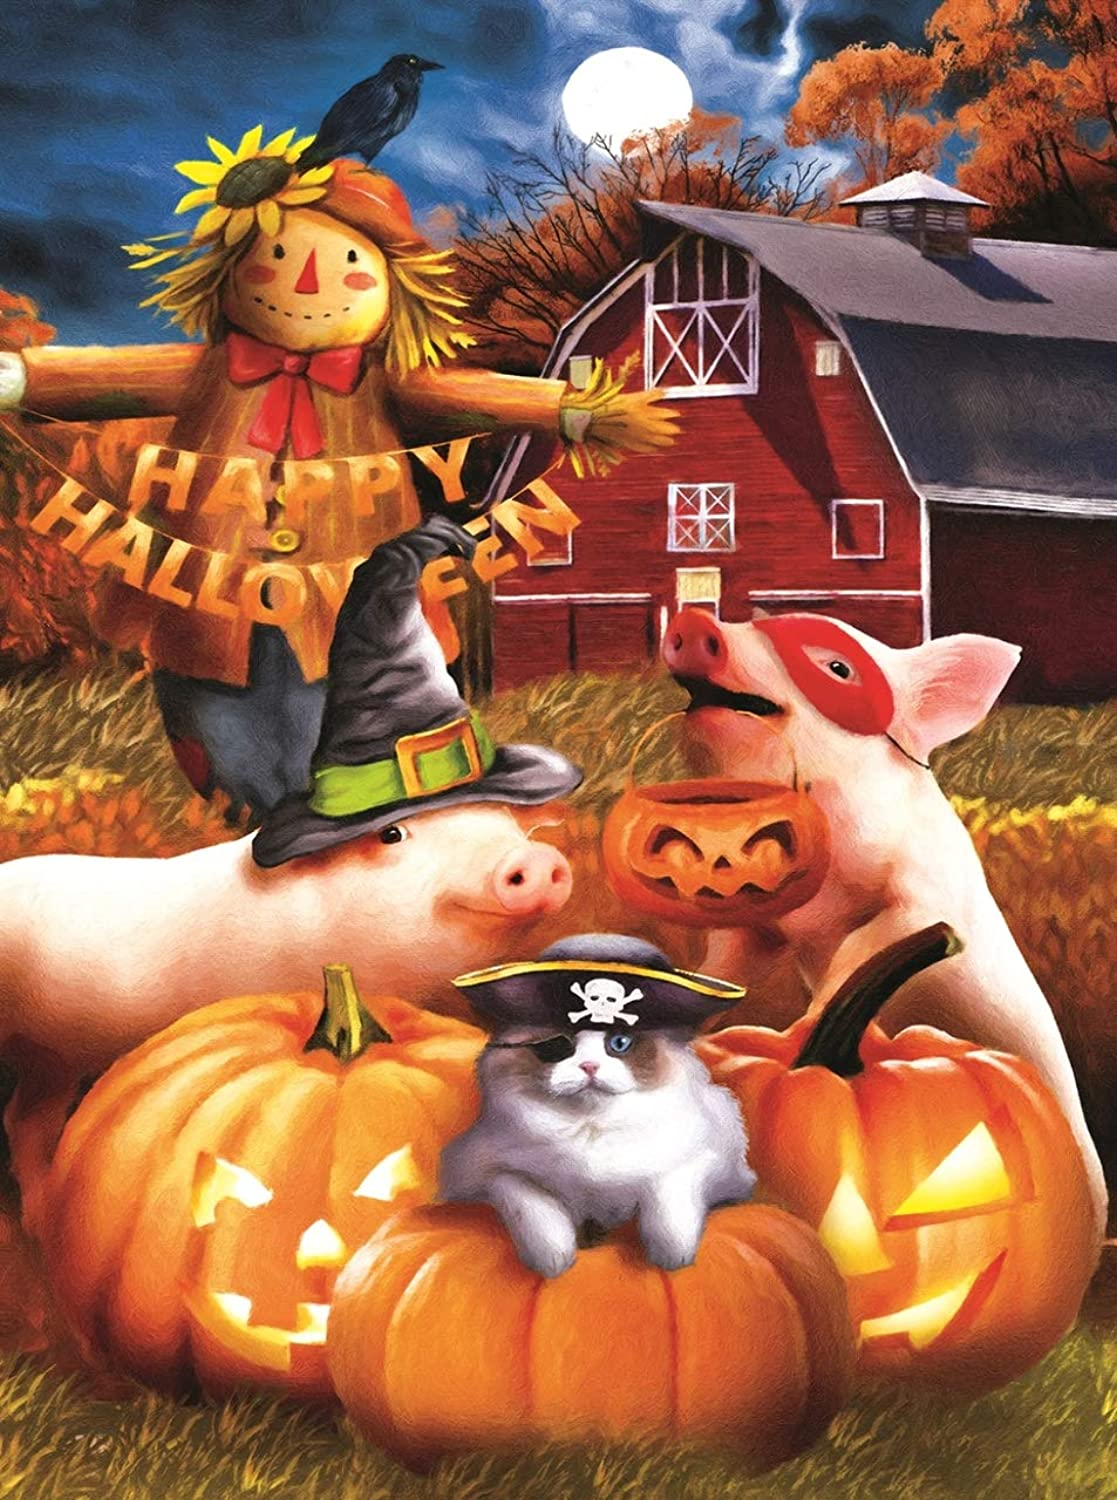 Happy Halloween 1000 pc Jigsaw Puzzle by SunsOut